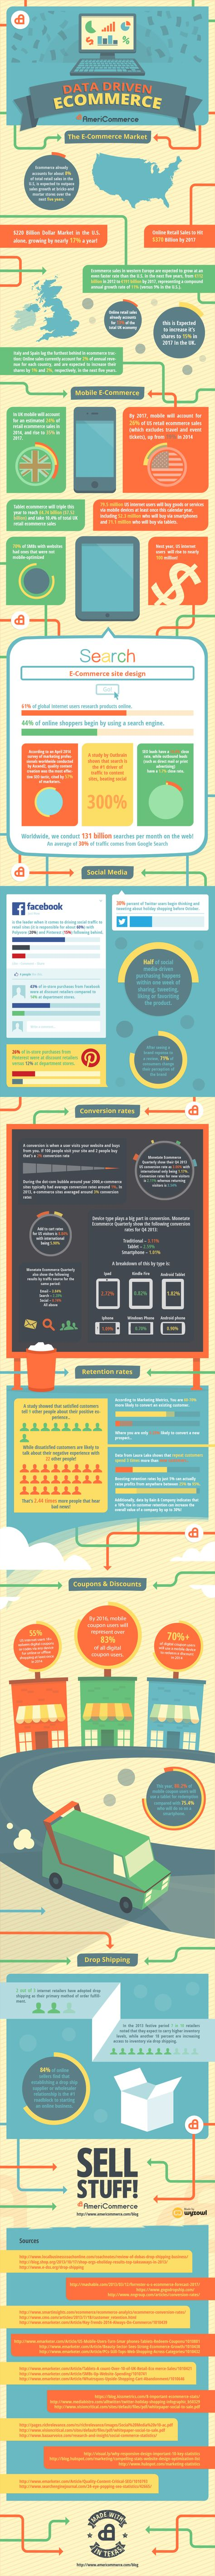 INFOGRAPHIC: Data Driven Ecommerce